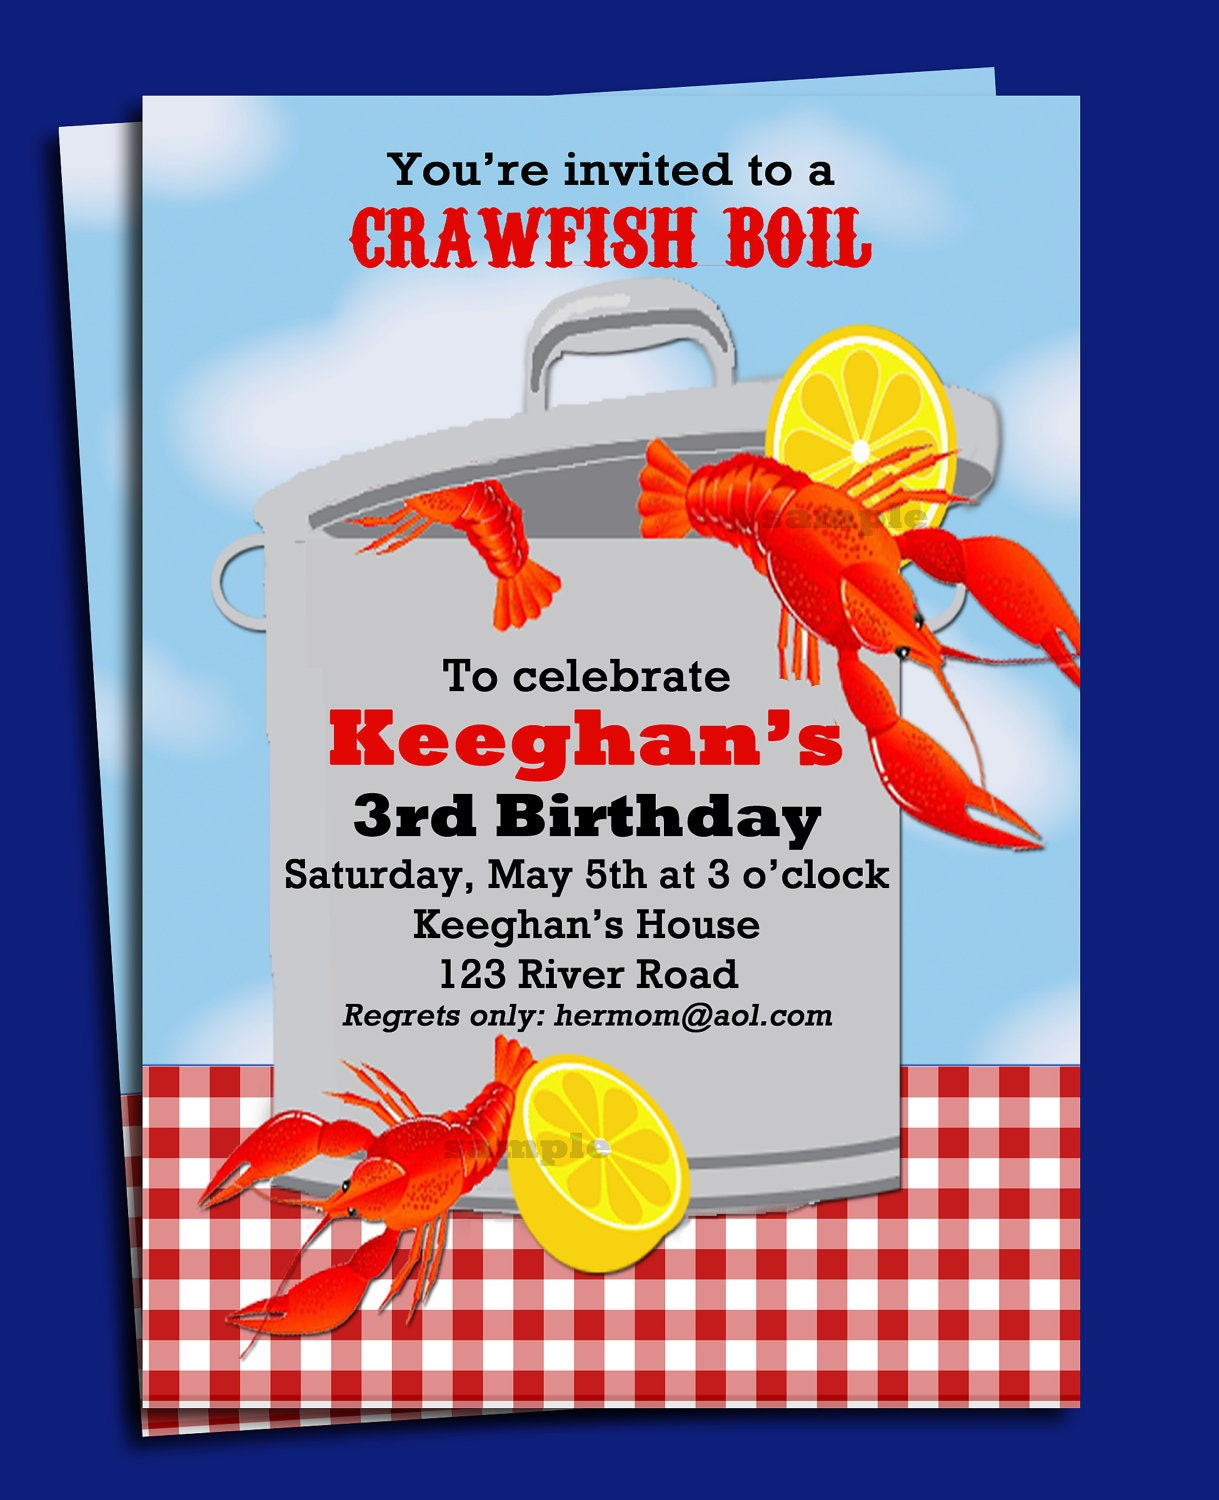 Gargantuan image pertaining to crawfish boil invitations free printable